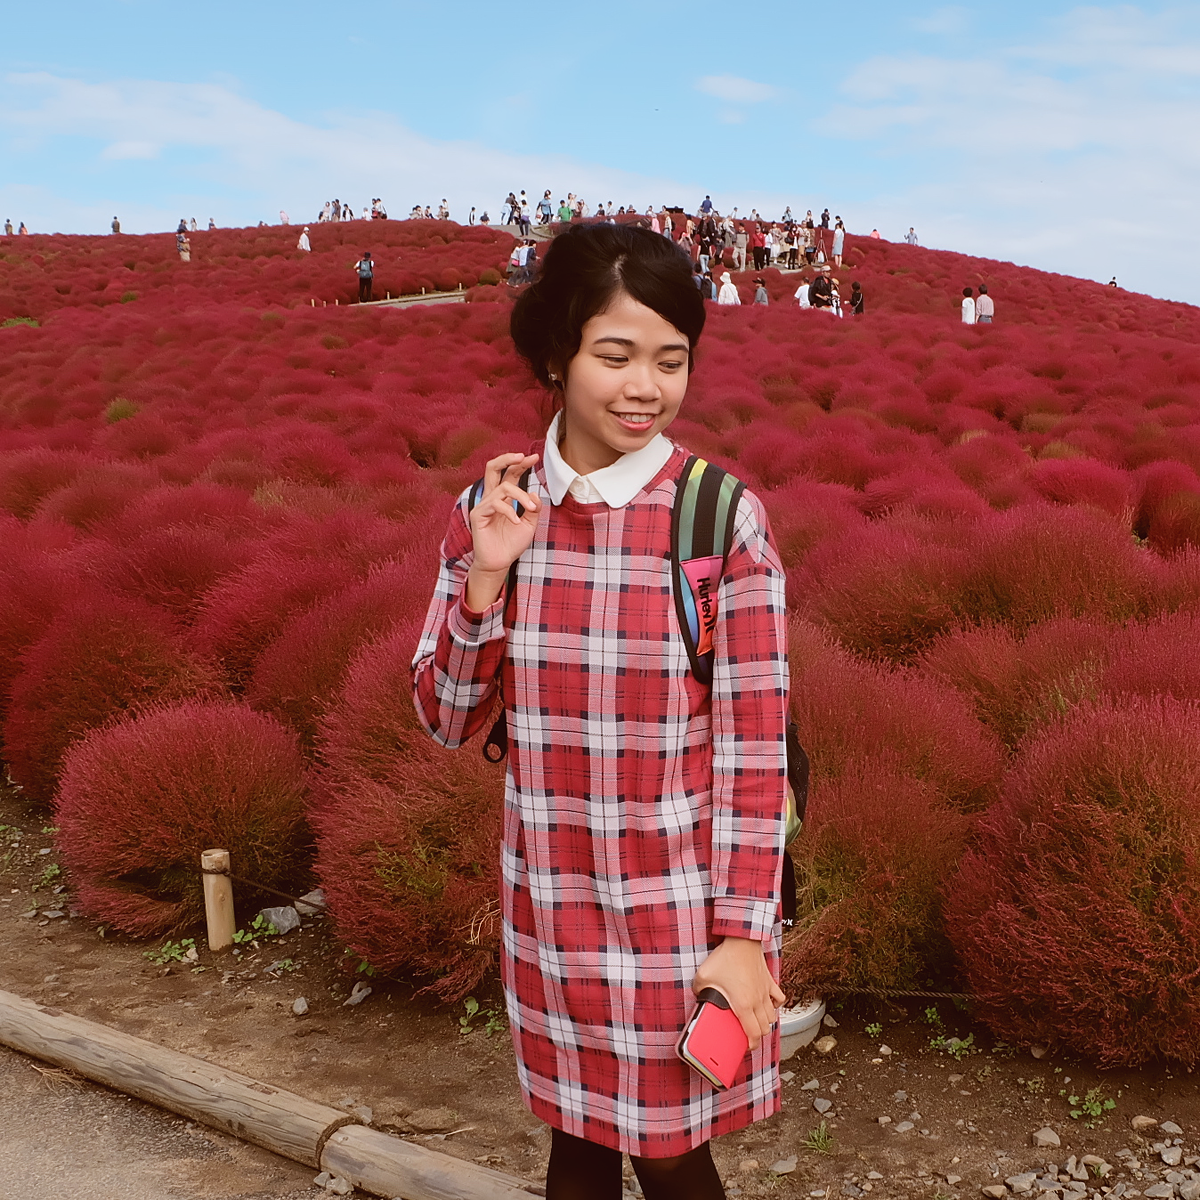 kochia-hitachi-seaside-park-autumn-japan-travel-ibaraki-46